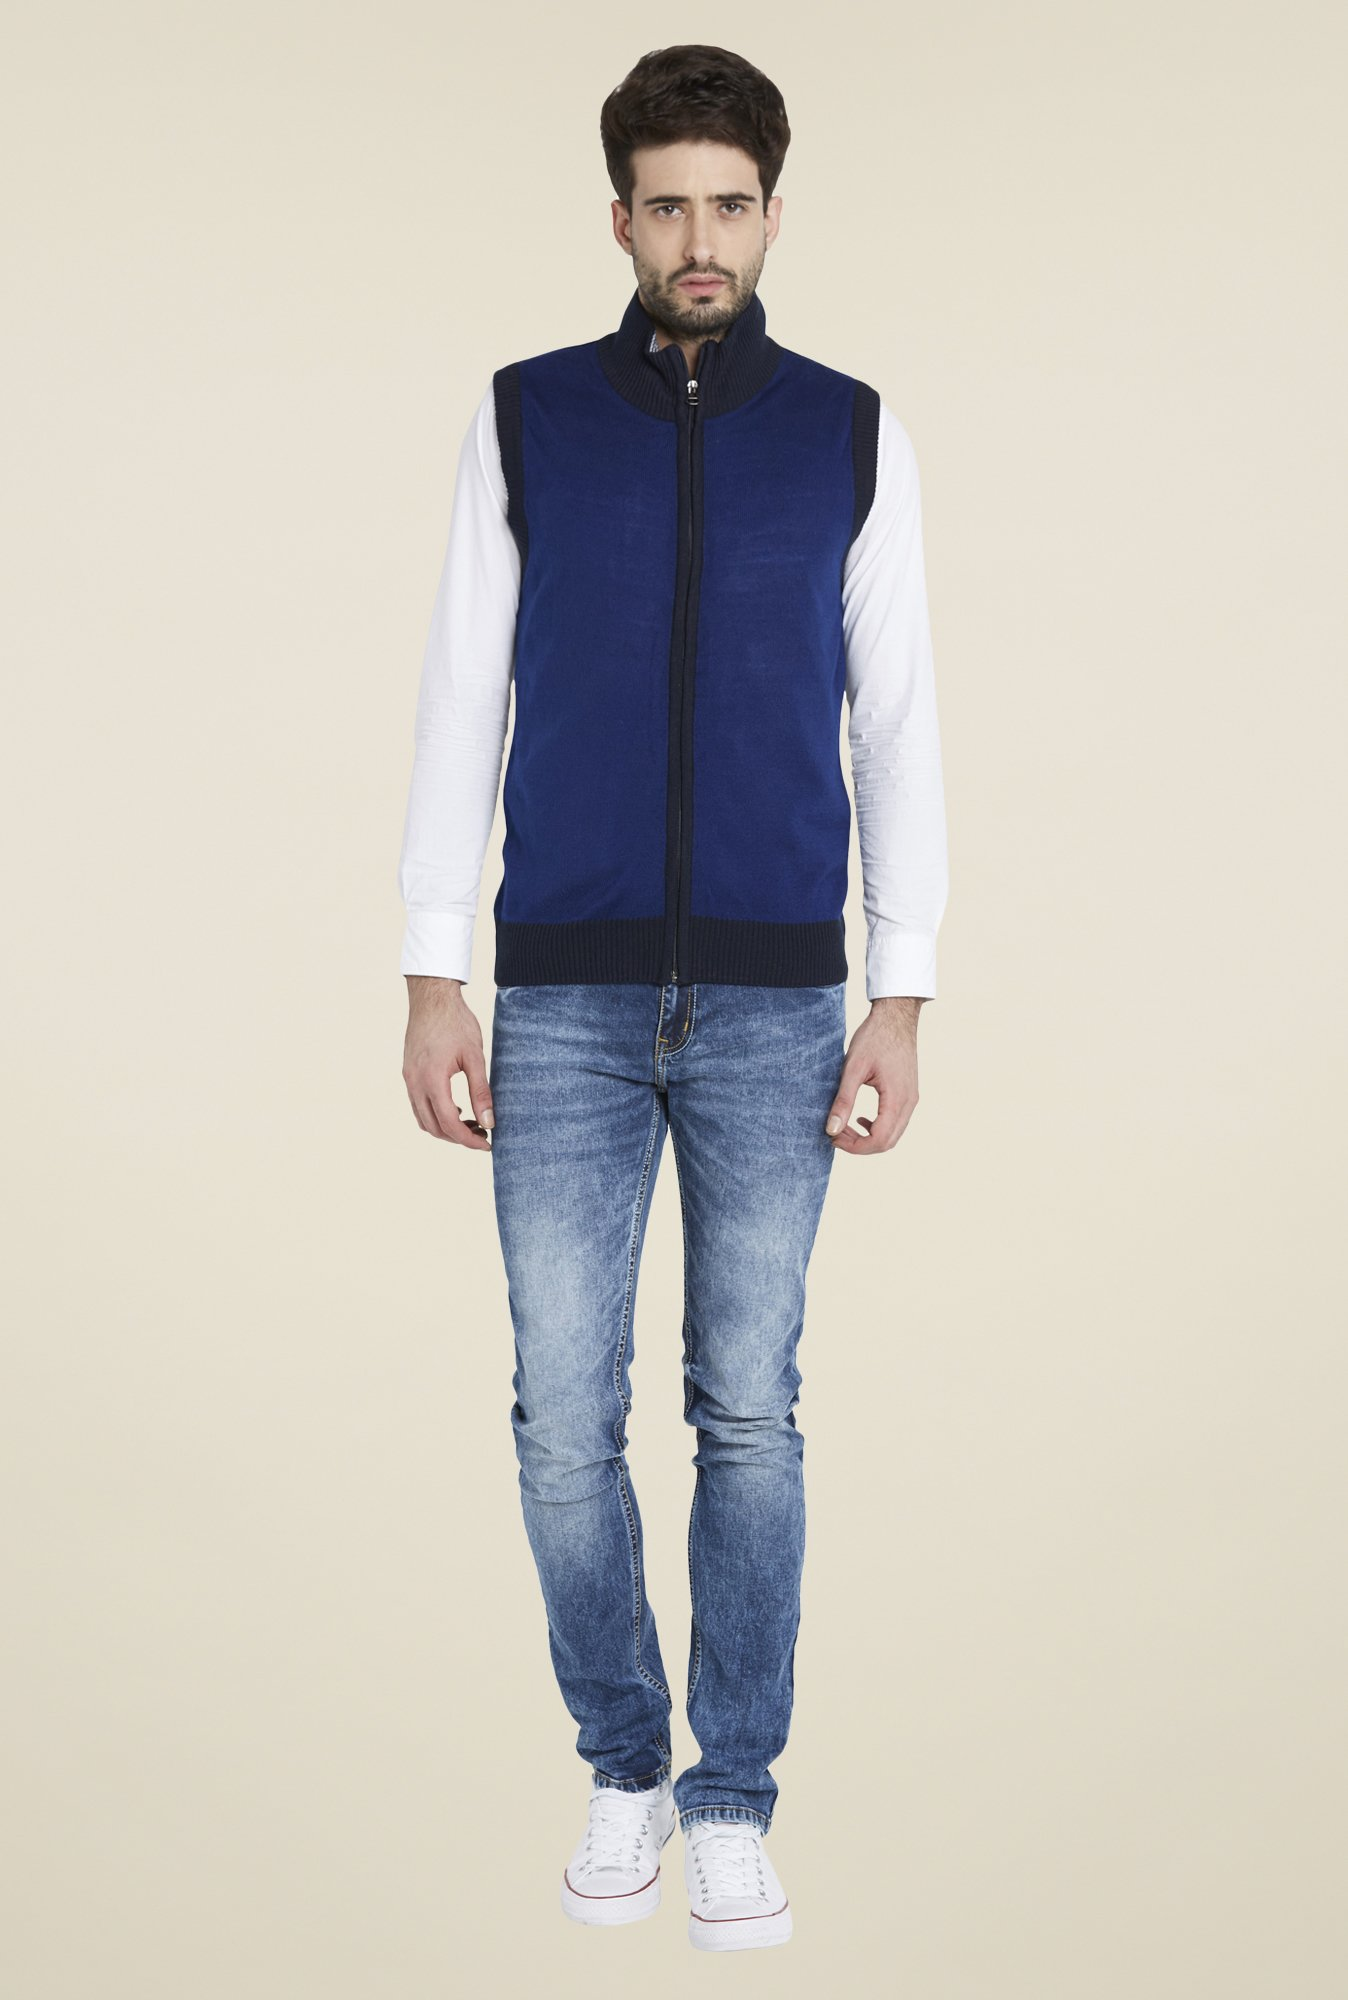 Globus Blue Sleeveless Jacket